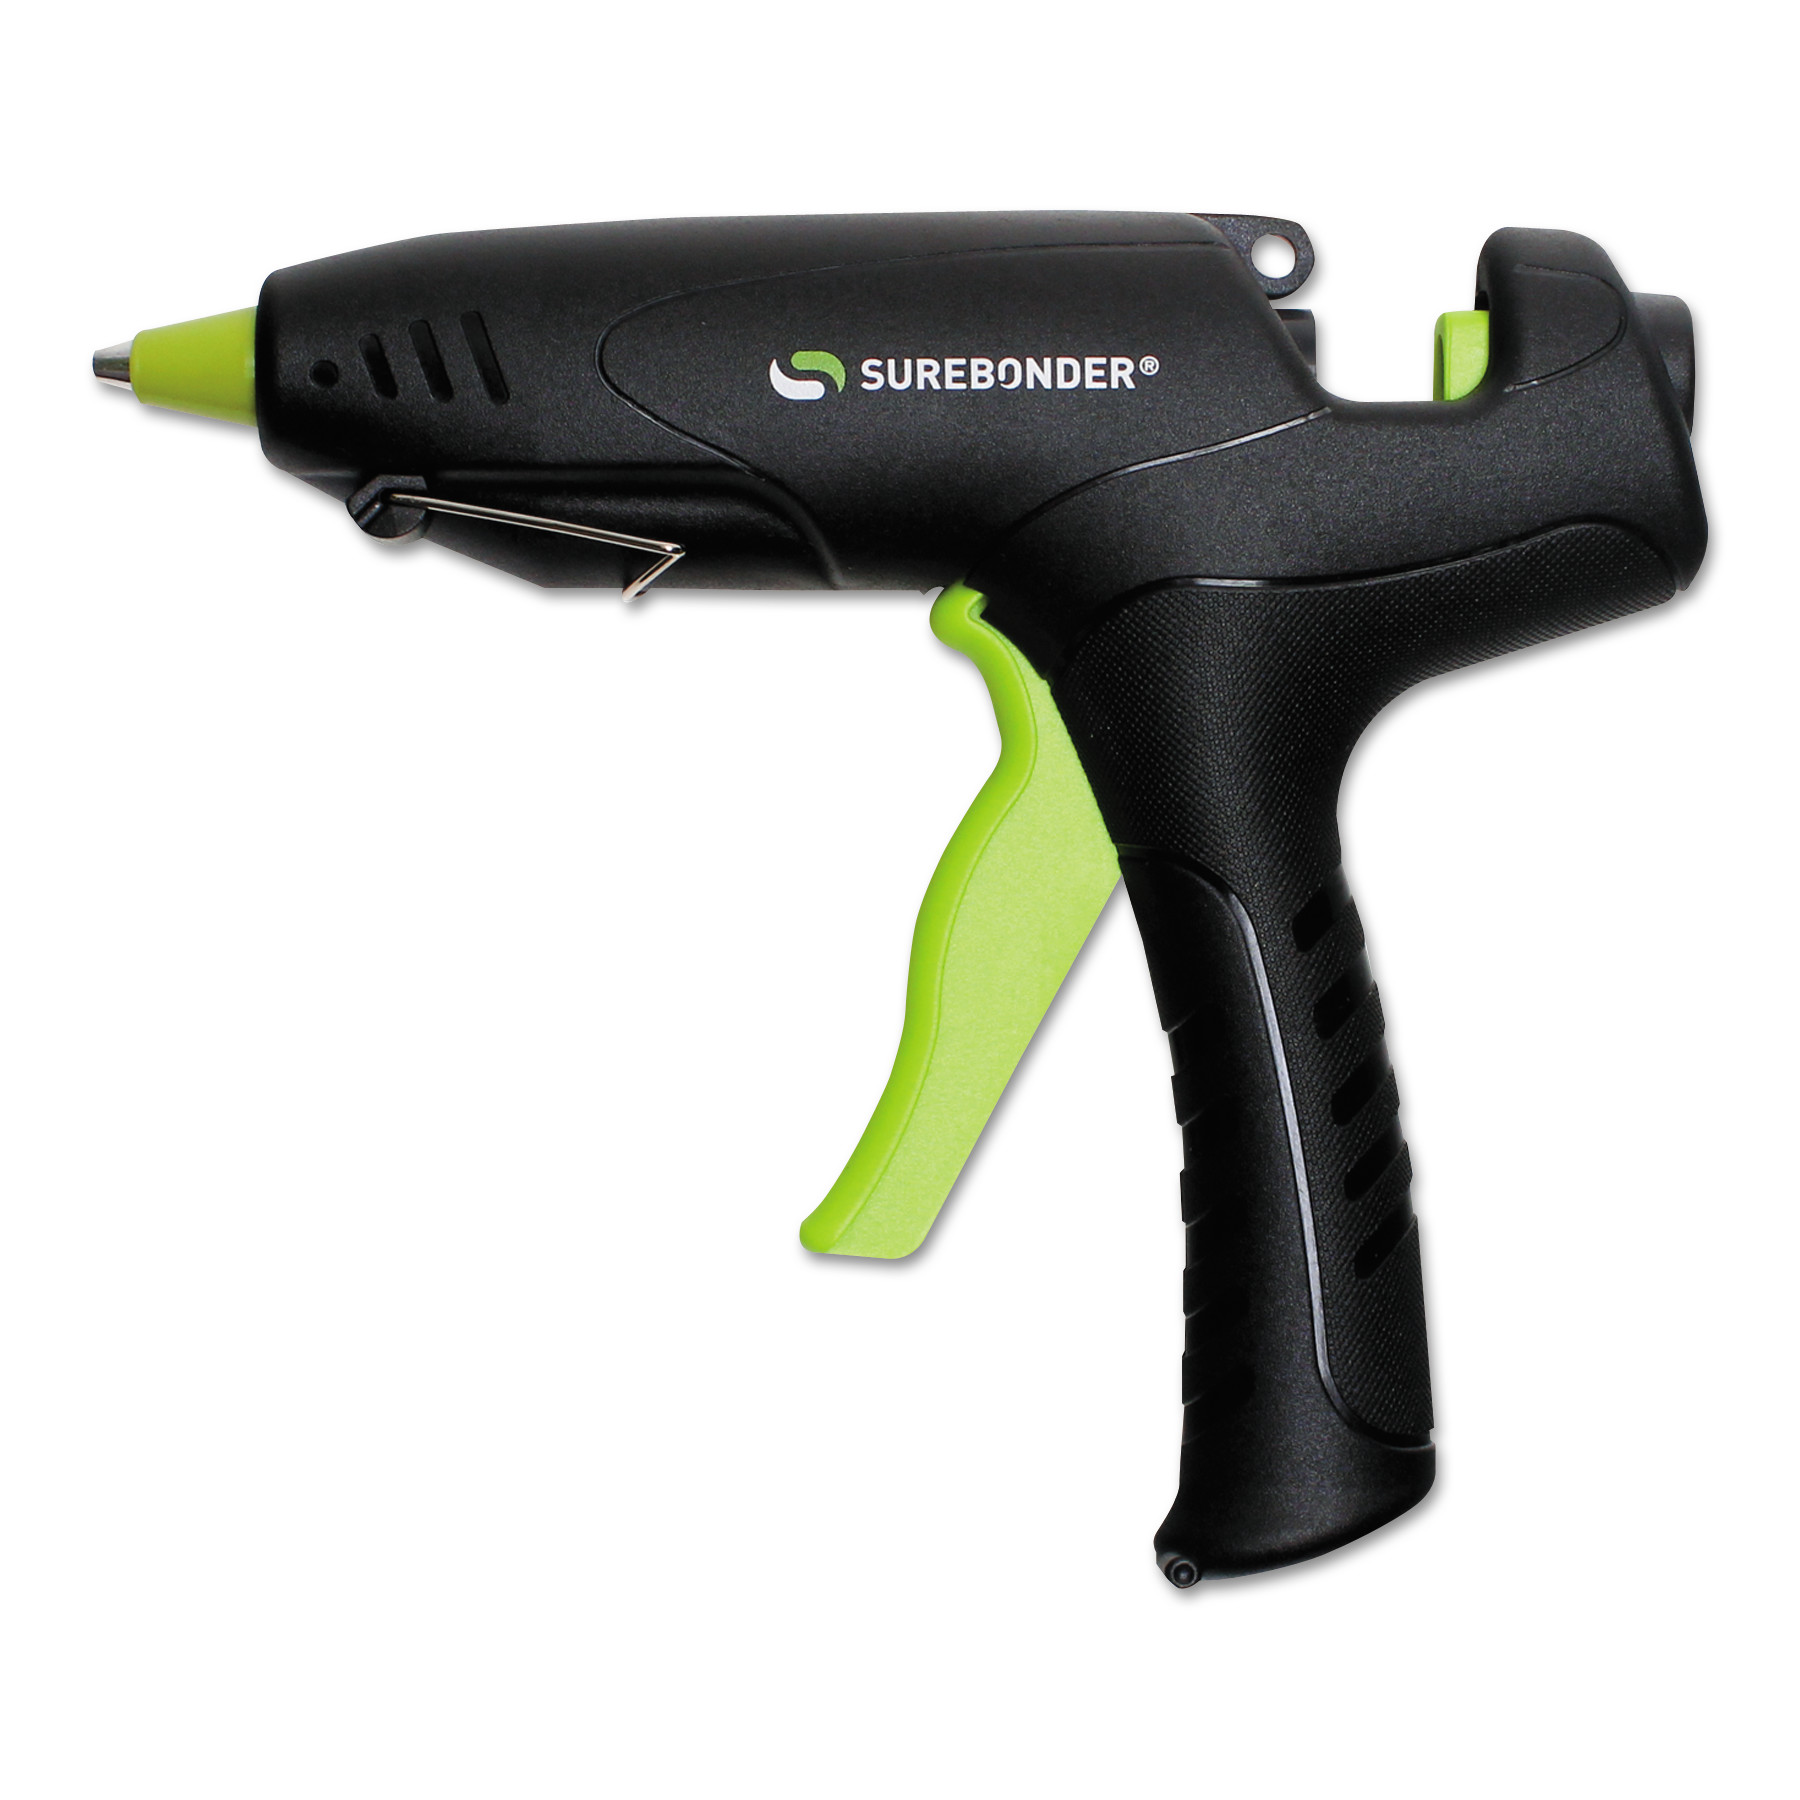 Surebonder High Temp Professional Glue Gun, 80 Watt -FPRPRO280